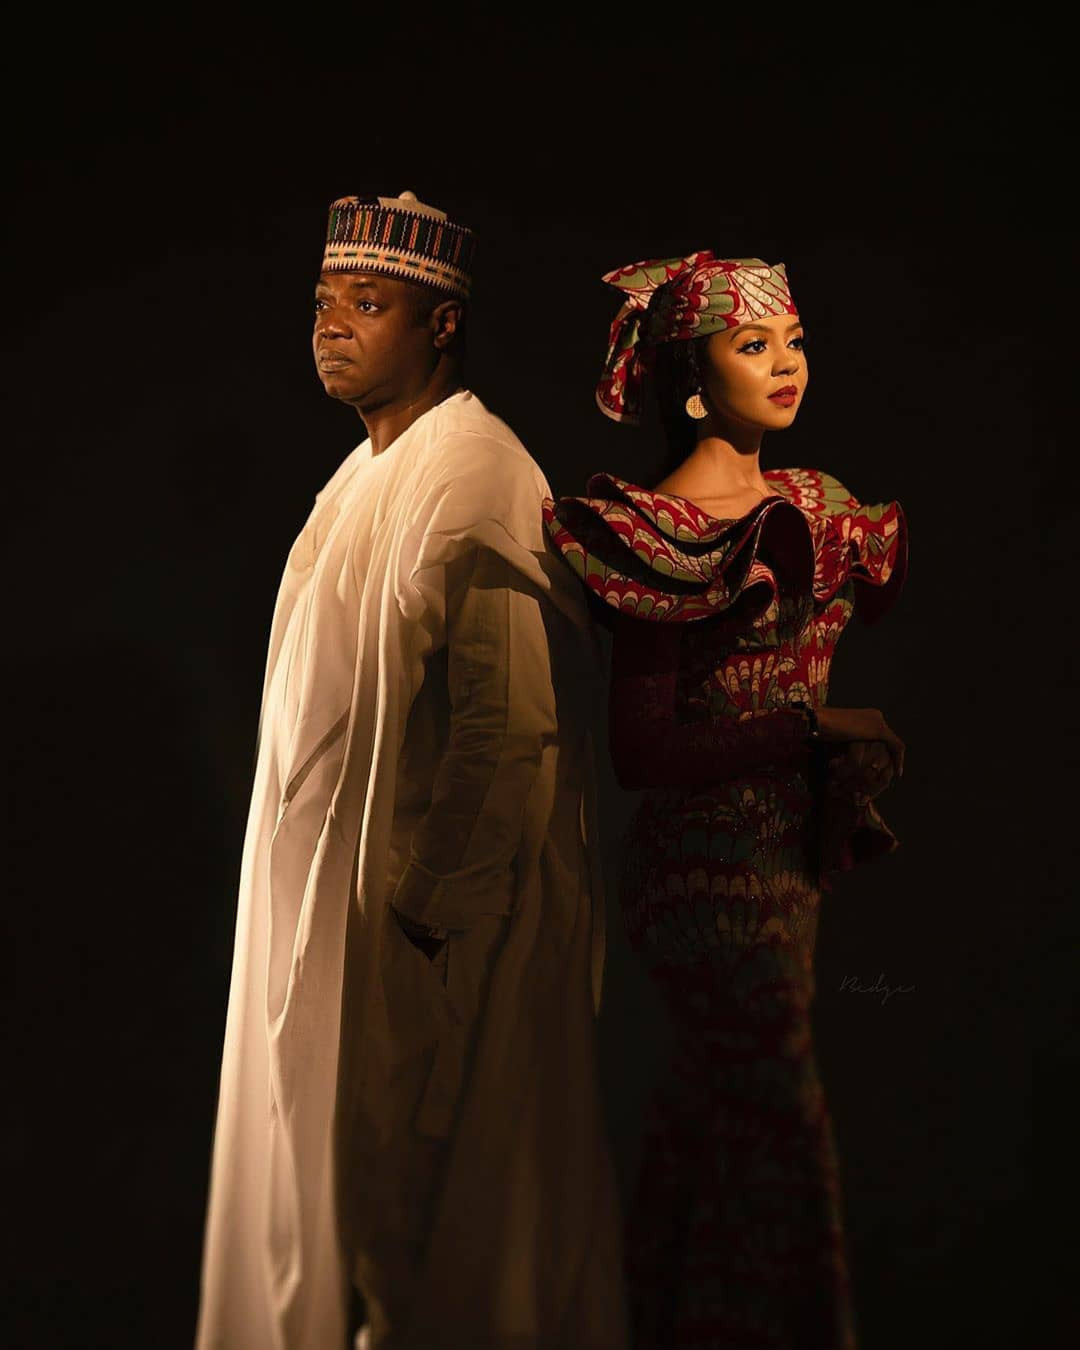 Lovely pre-wedding photos of Adama Indimi and her hubby, Malik Ado-Ibrahim